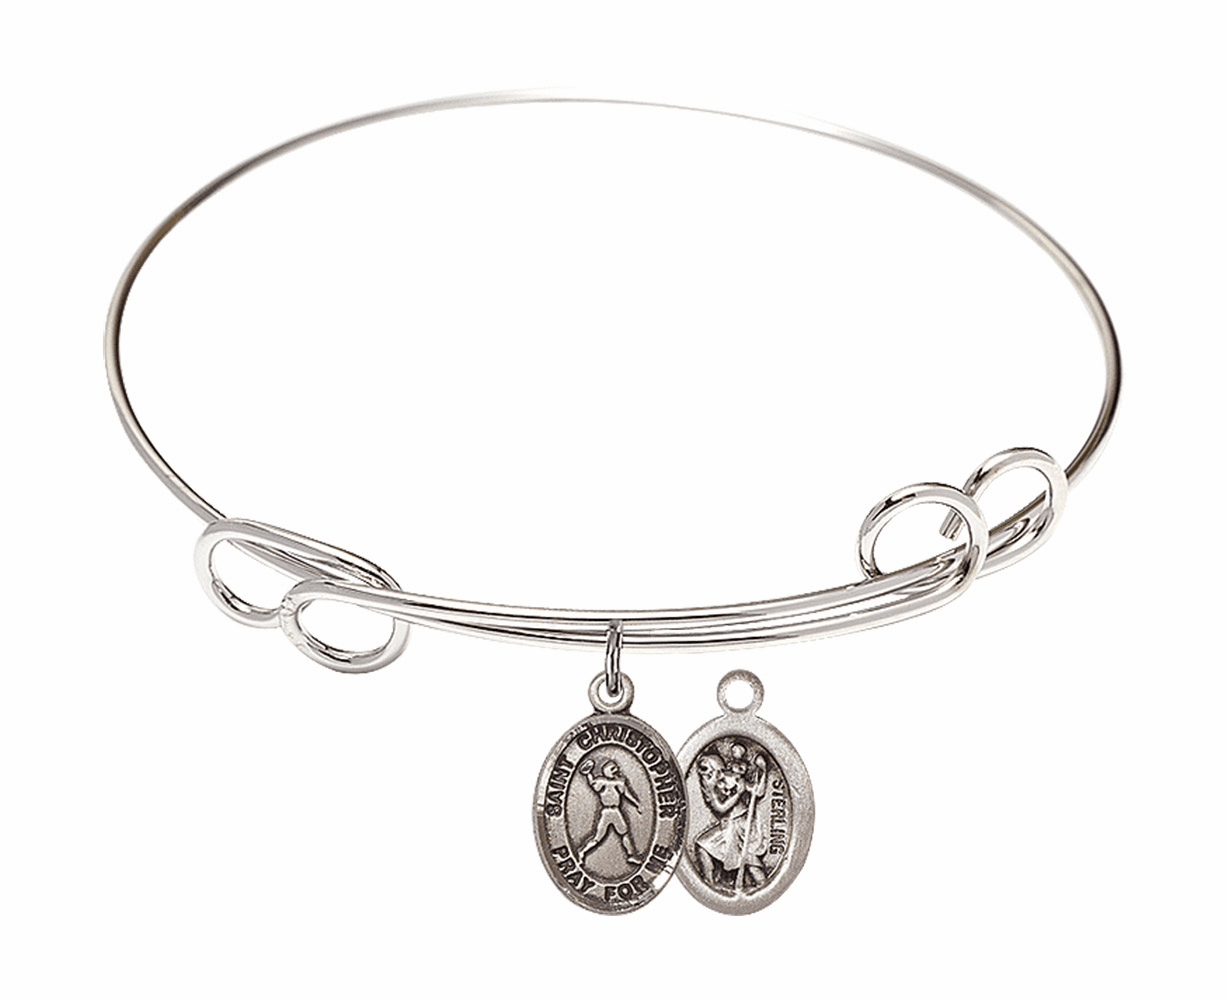 Round Loop St Christopher Football Bangle Charm Bracelet by Bliss